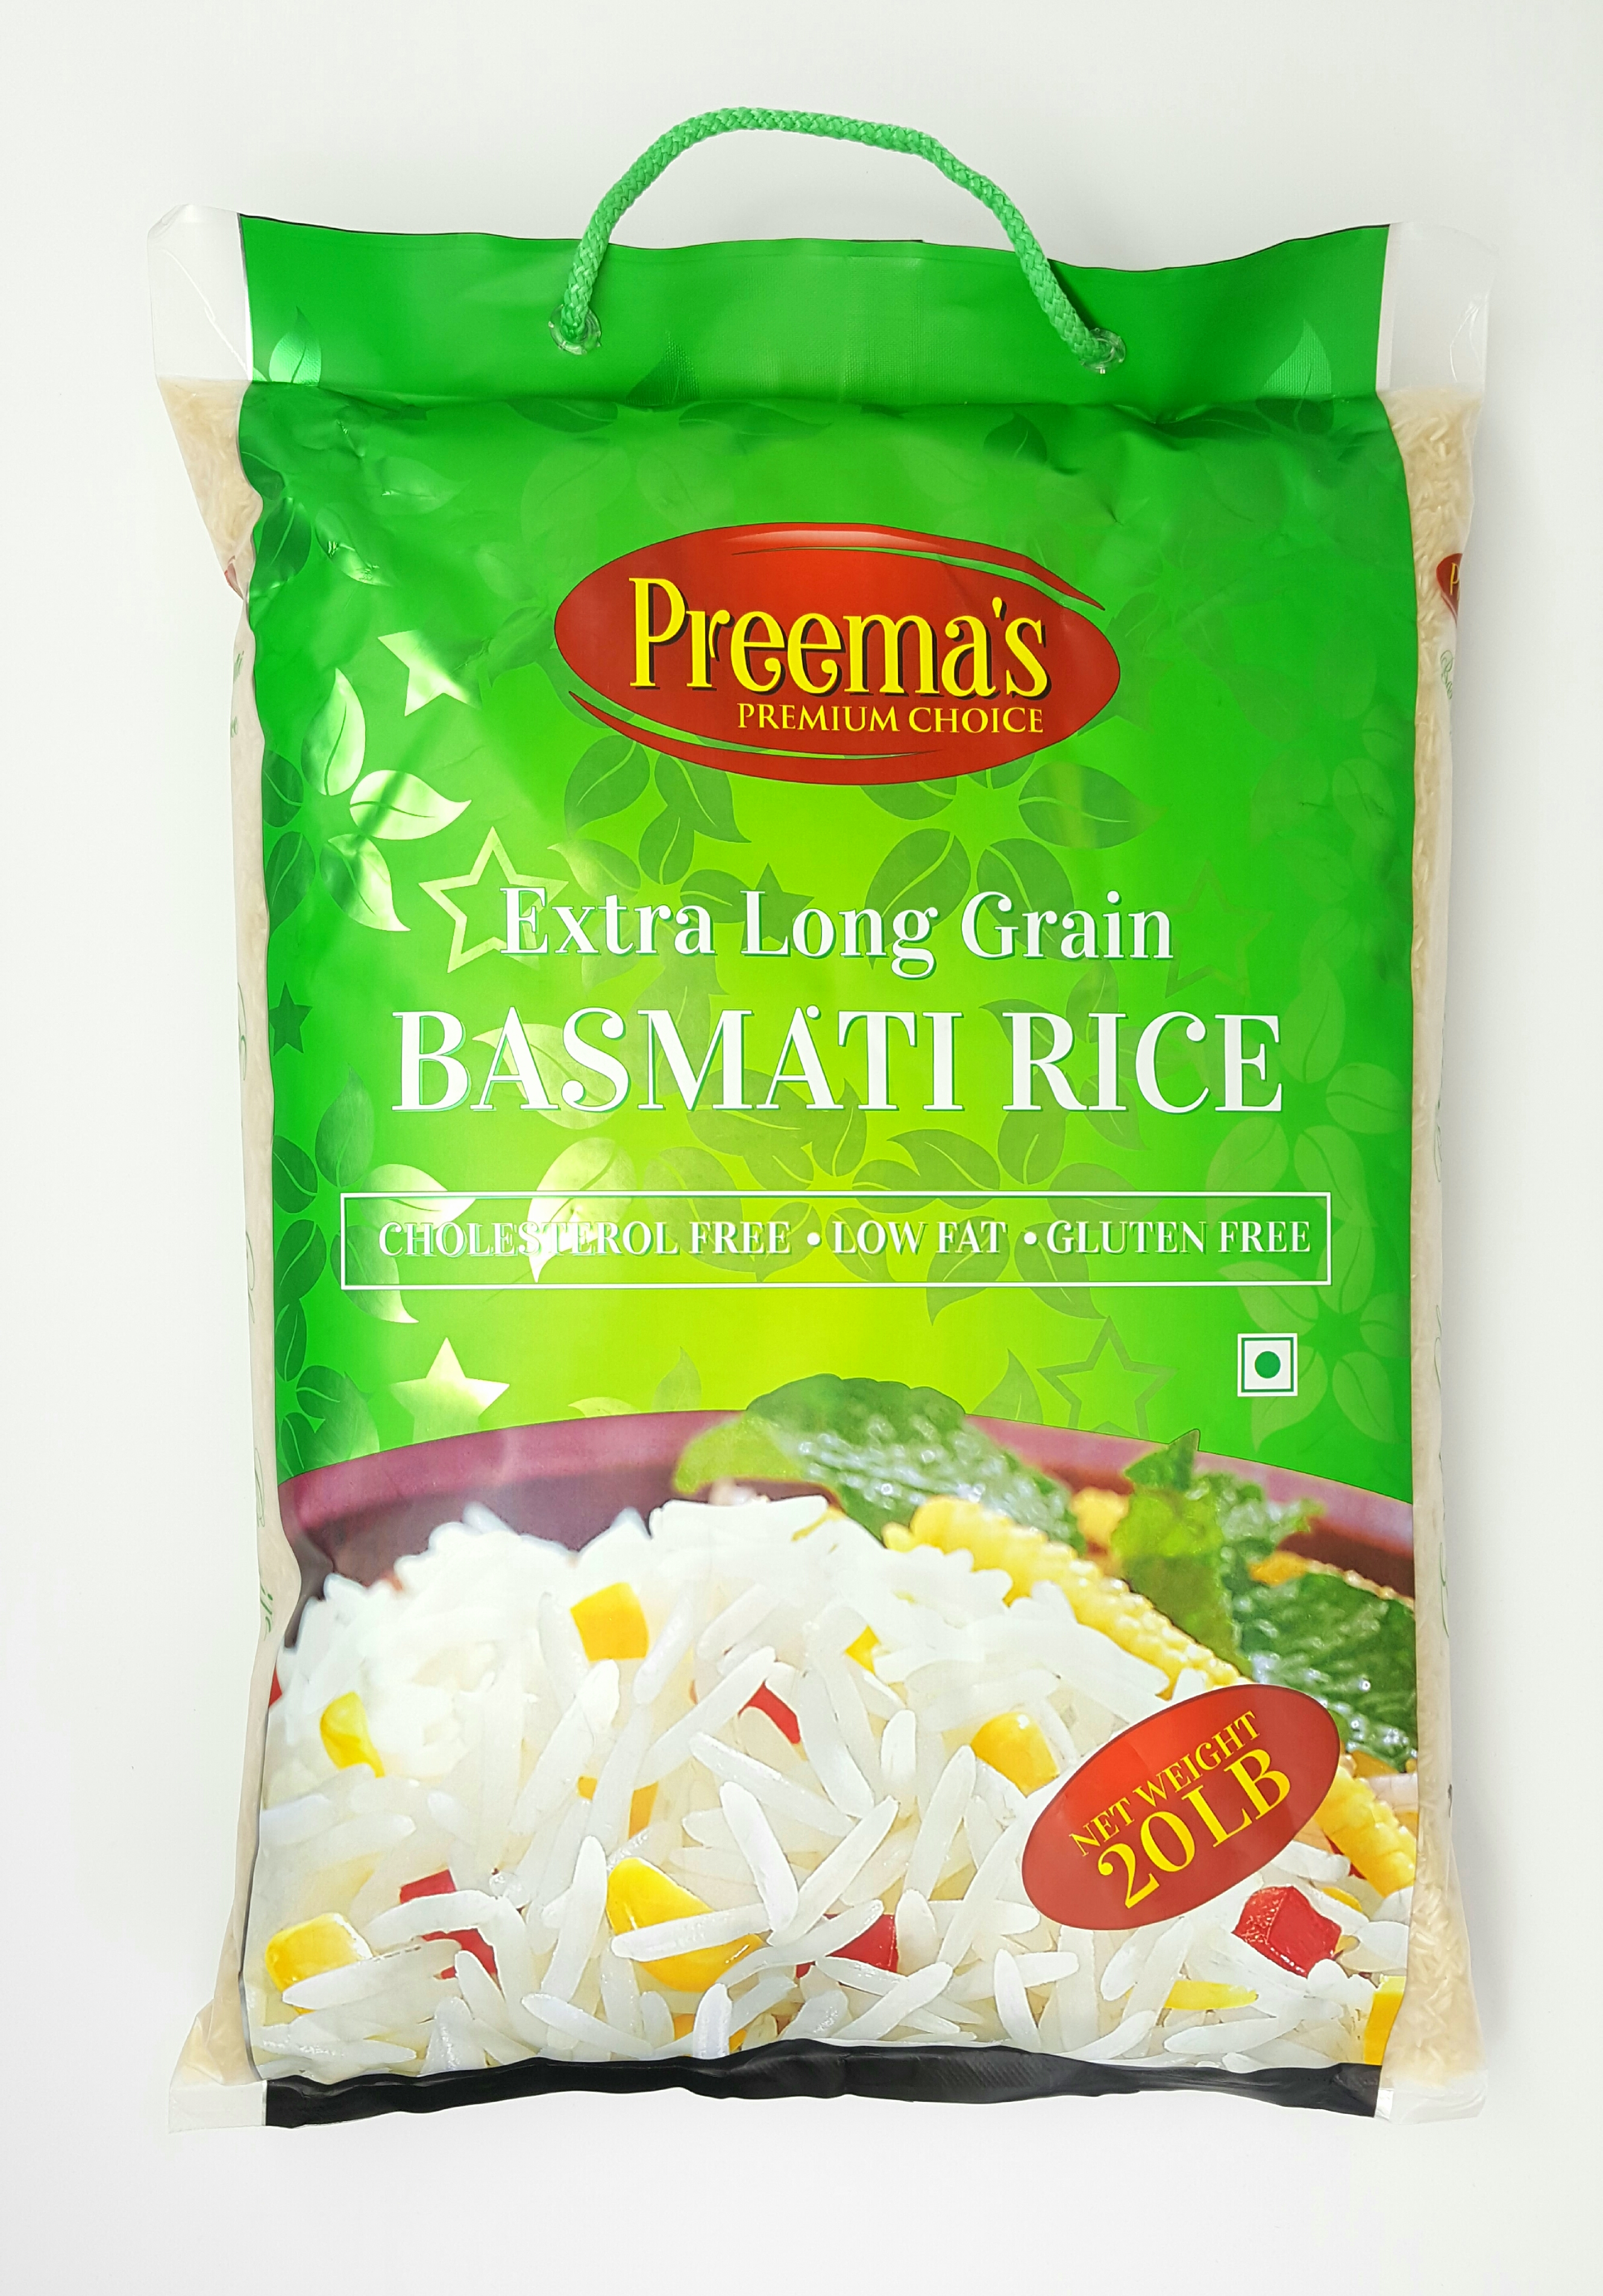 Preema's Premium Choice Extra Long Grain Basmati Rice 20LB